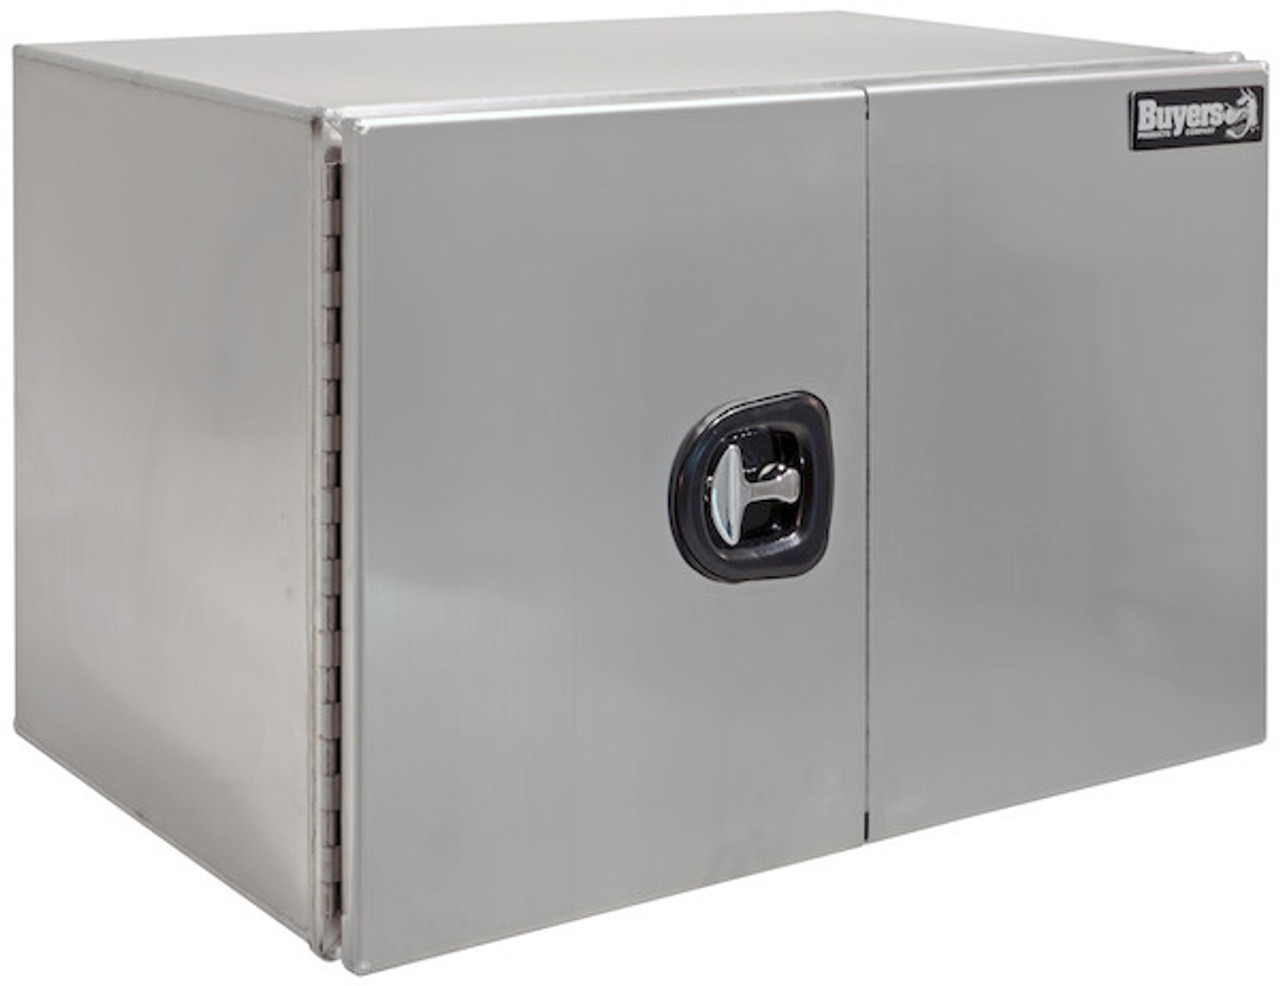 "1705440 BUYERS PRODUCTS XD SMOOTH ALUMINUM UNDERBODY TOOLBOX WITH BARN DOOR 24""HX24""DX48""W"